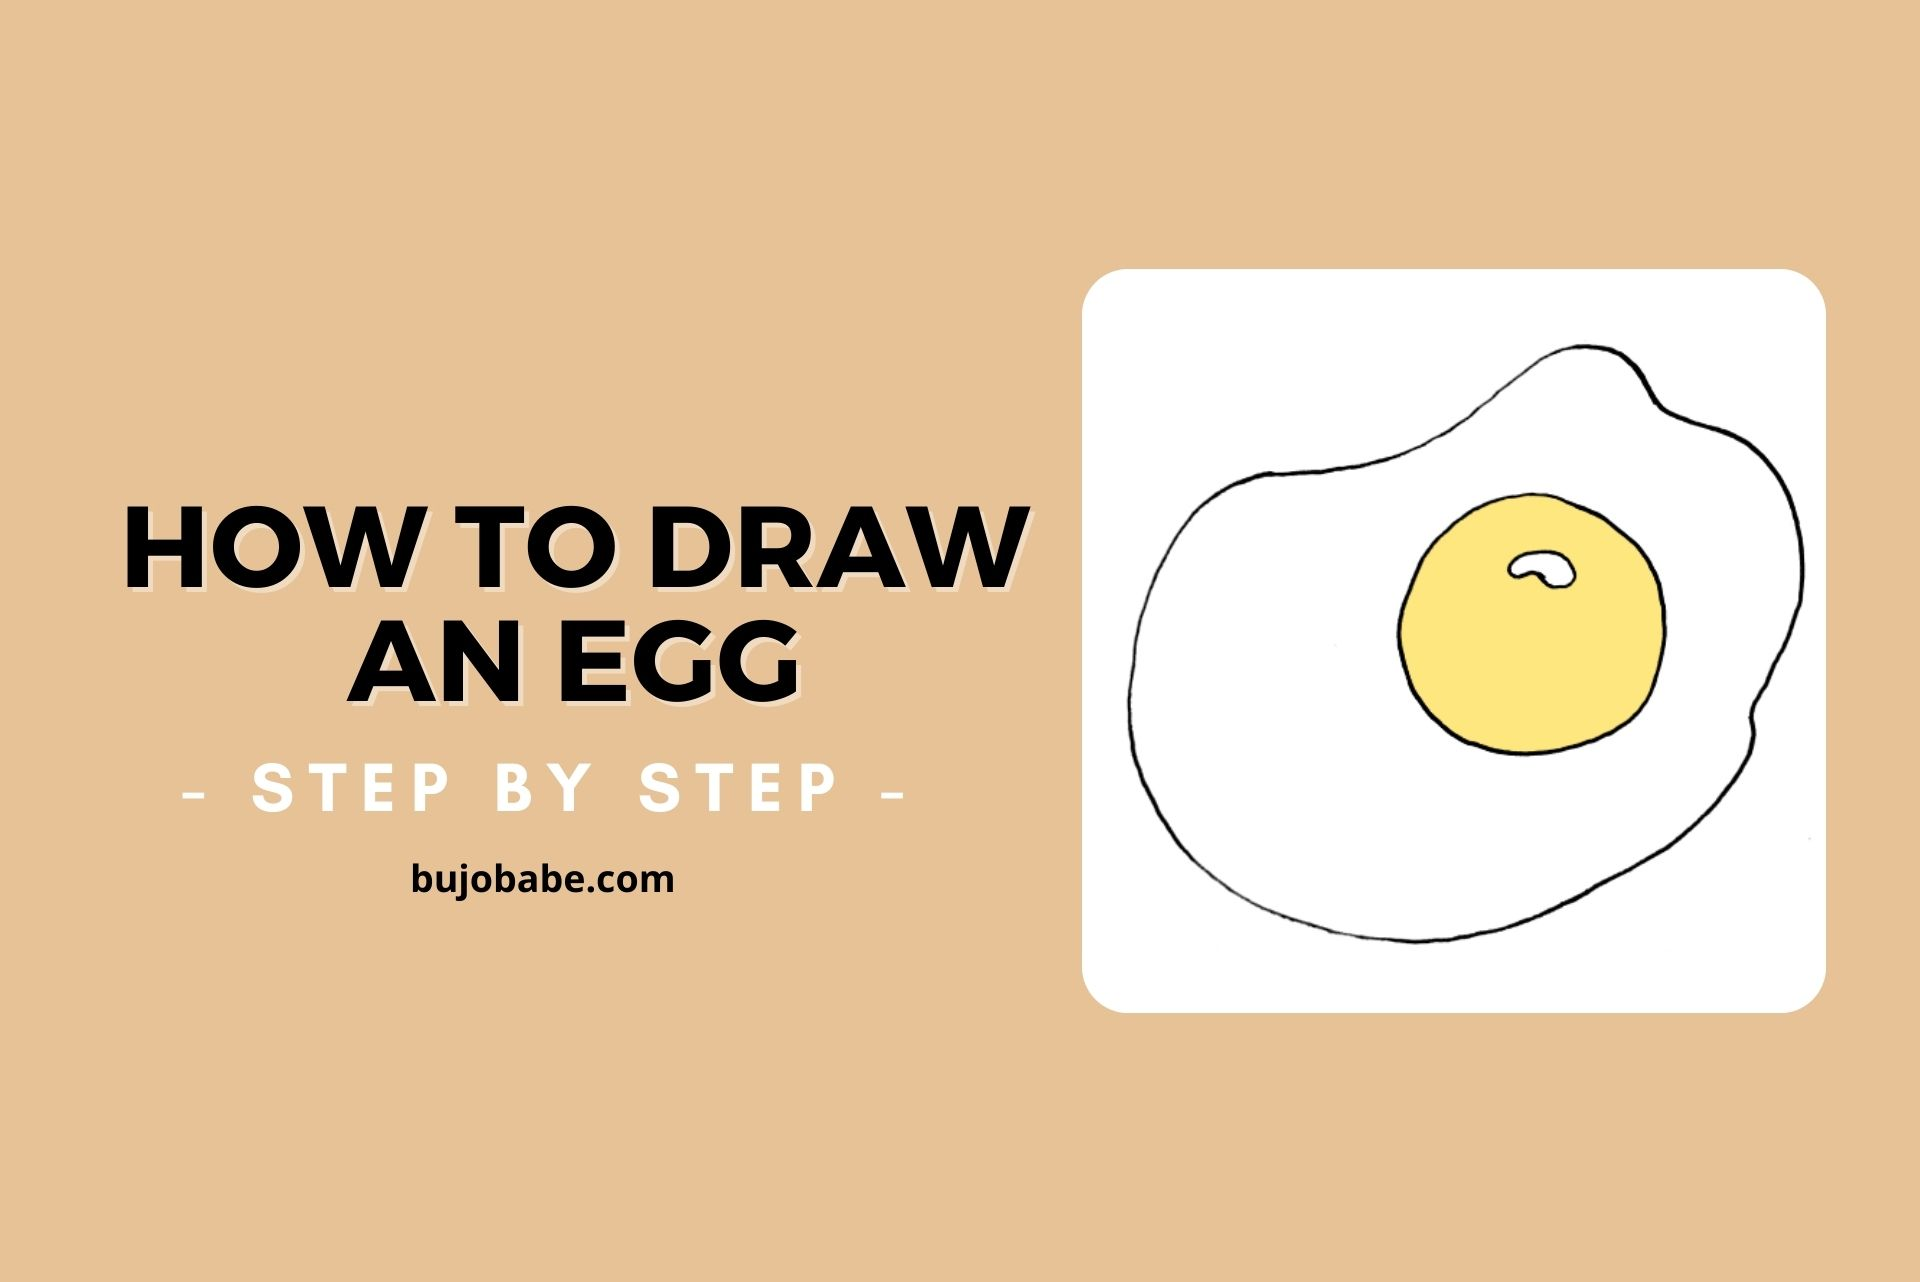 how to draw an egg step by step